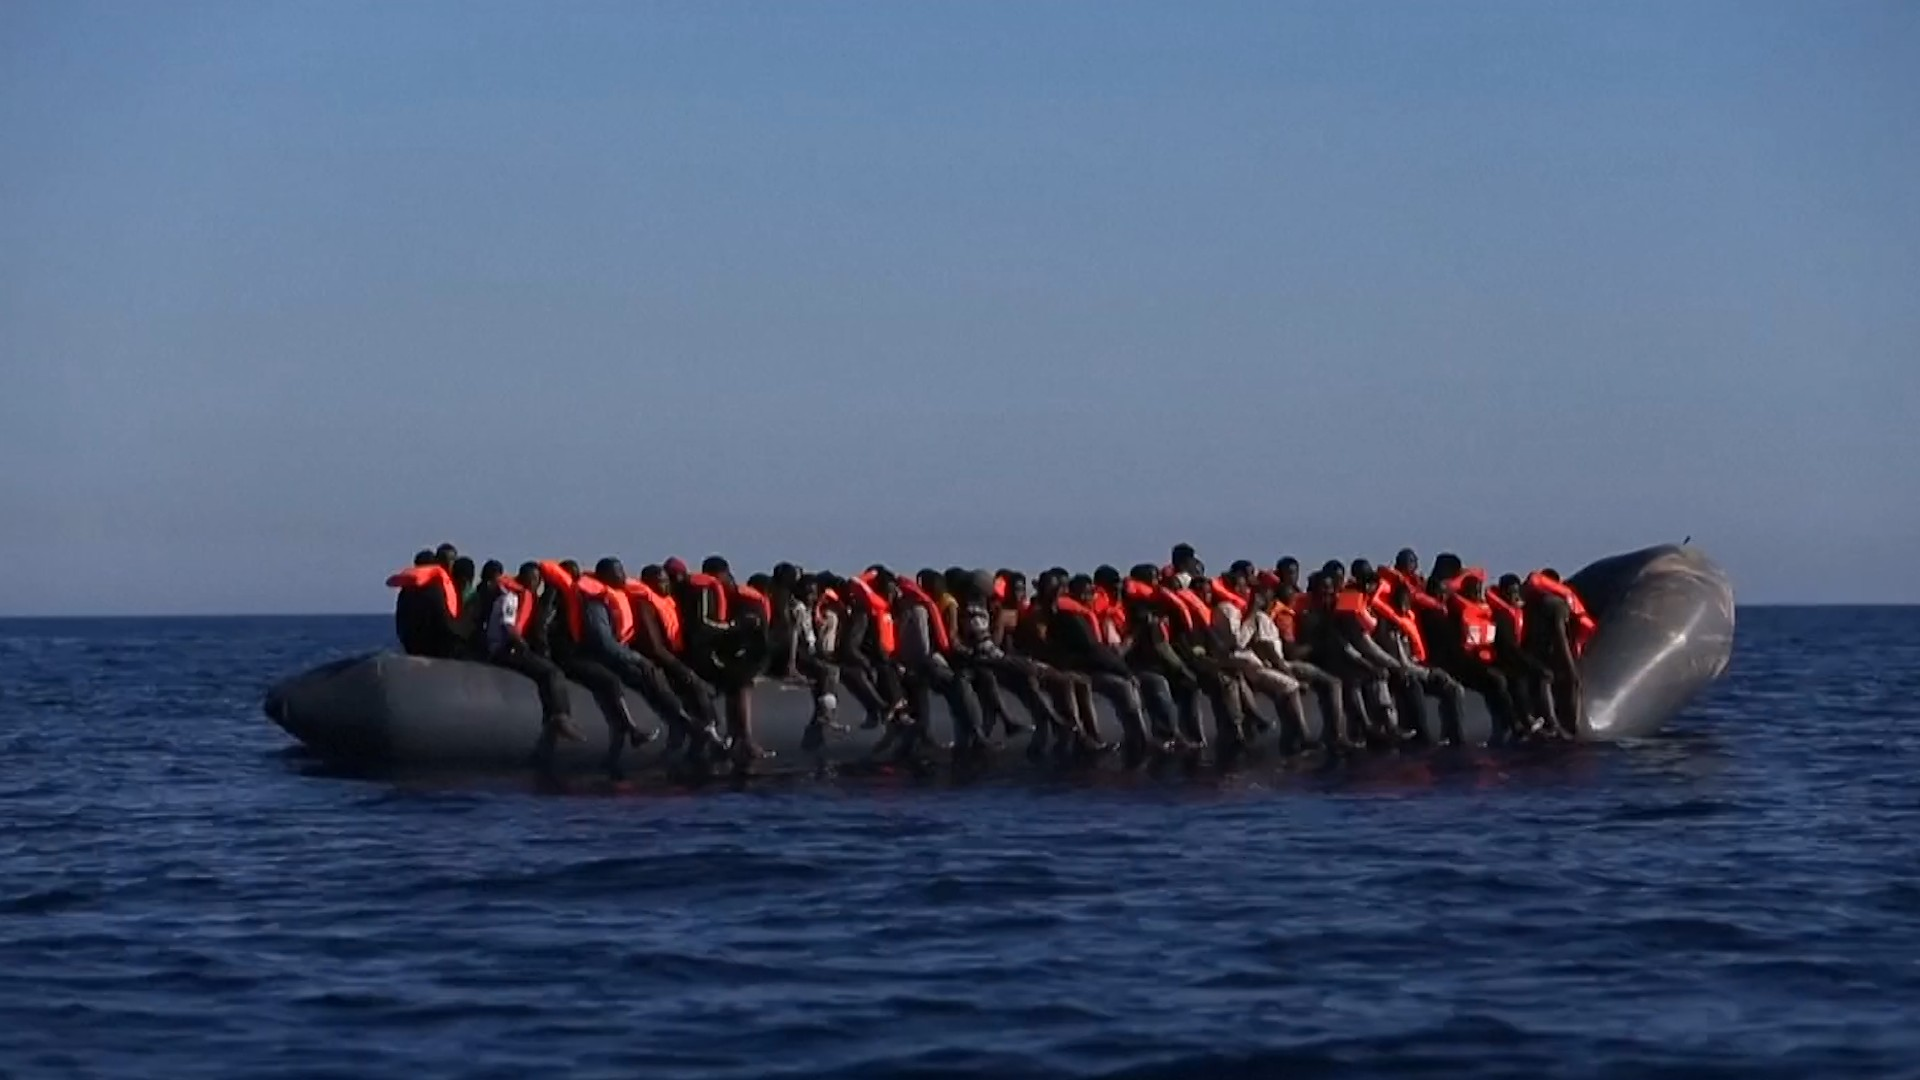 Migrants are still drowning in the Mediterranean and the EU can't agree on what to do about it